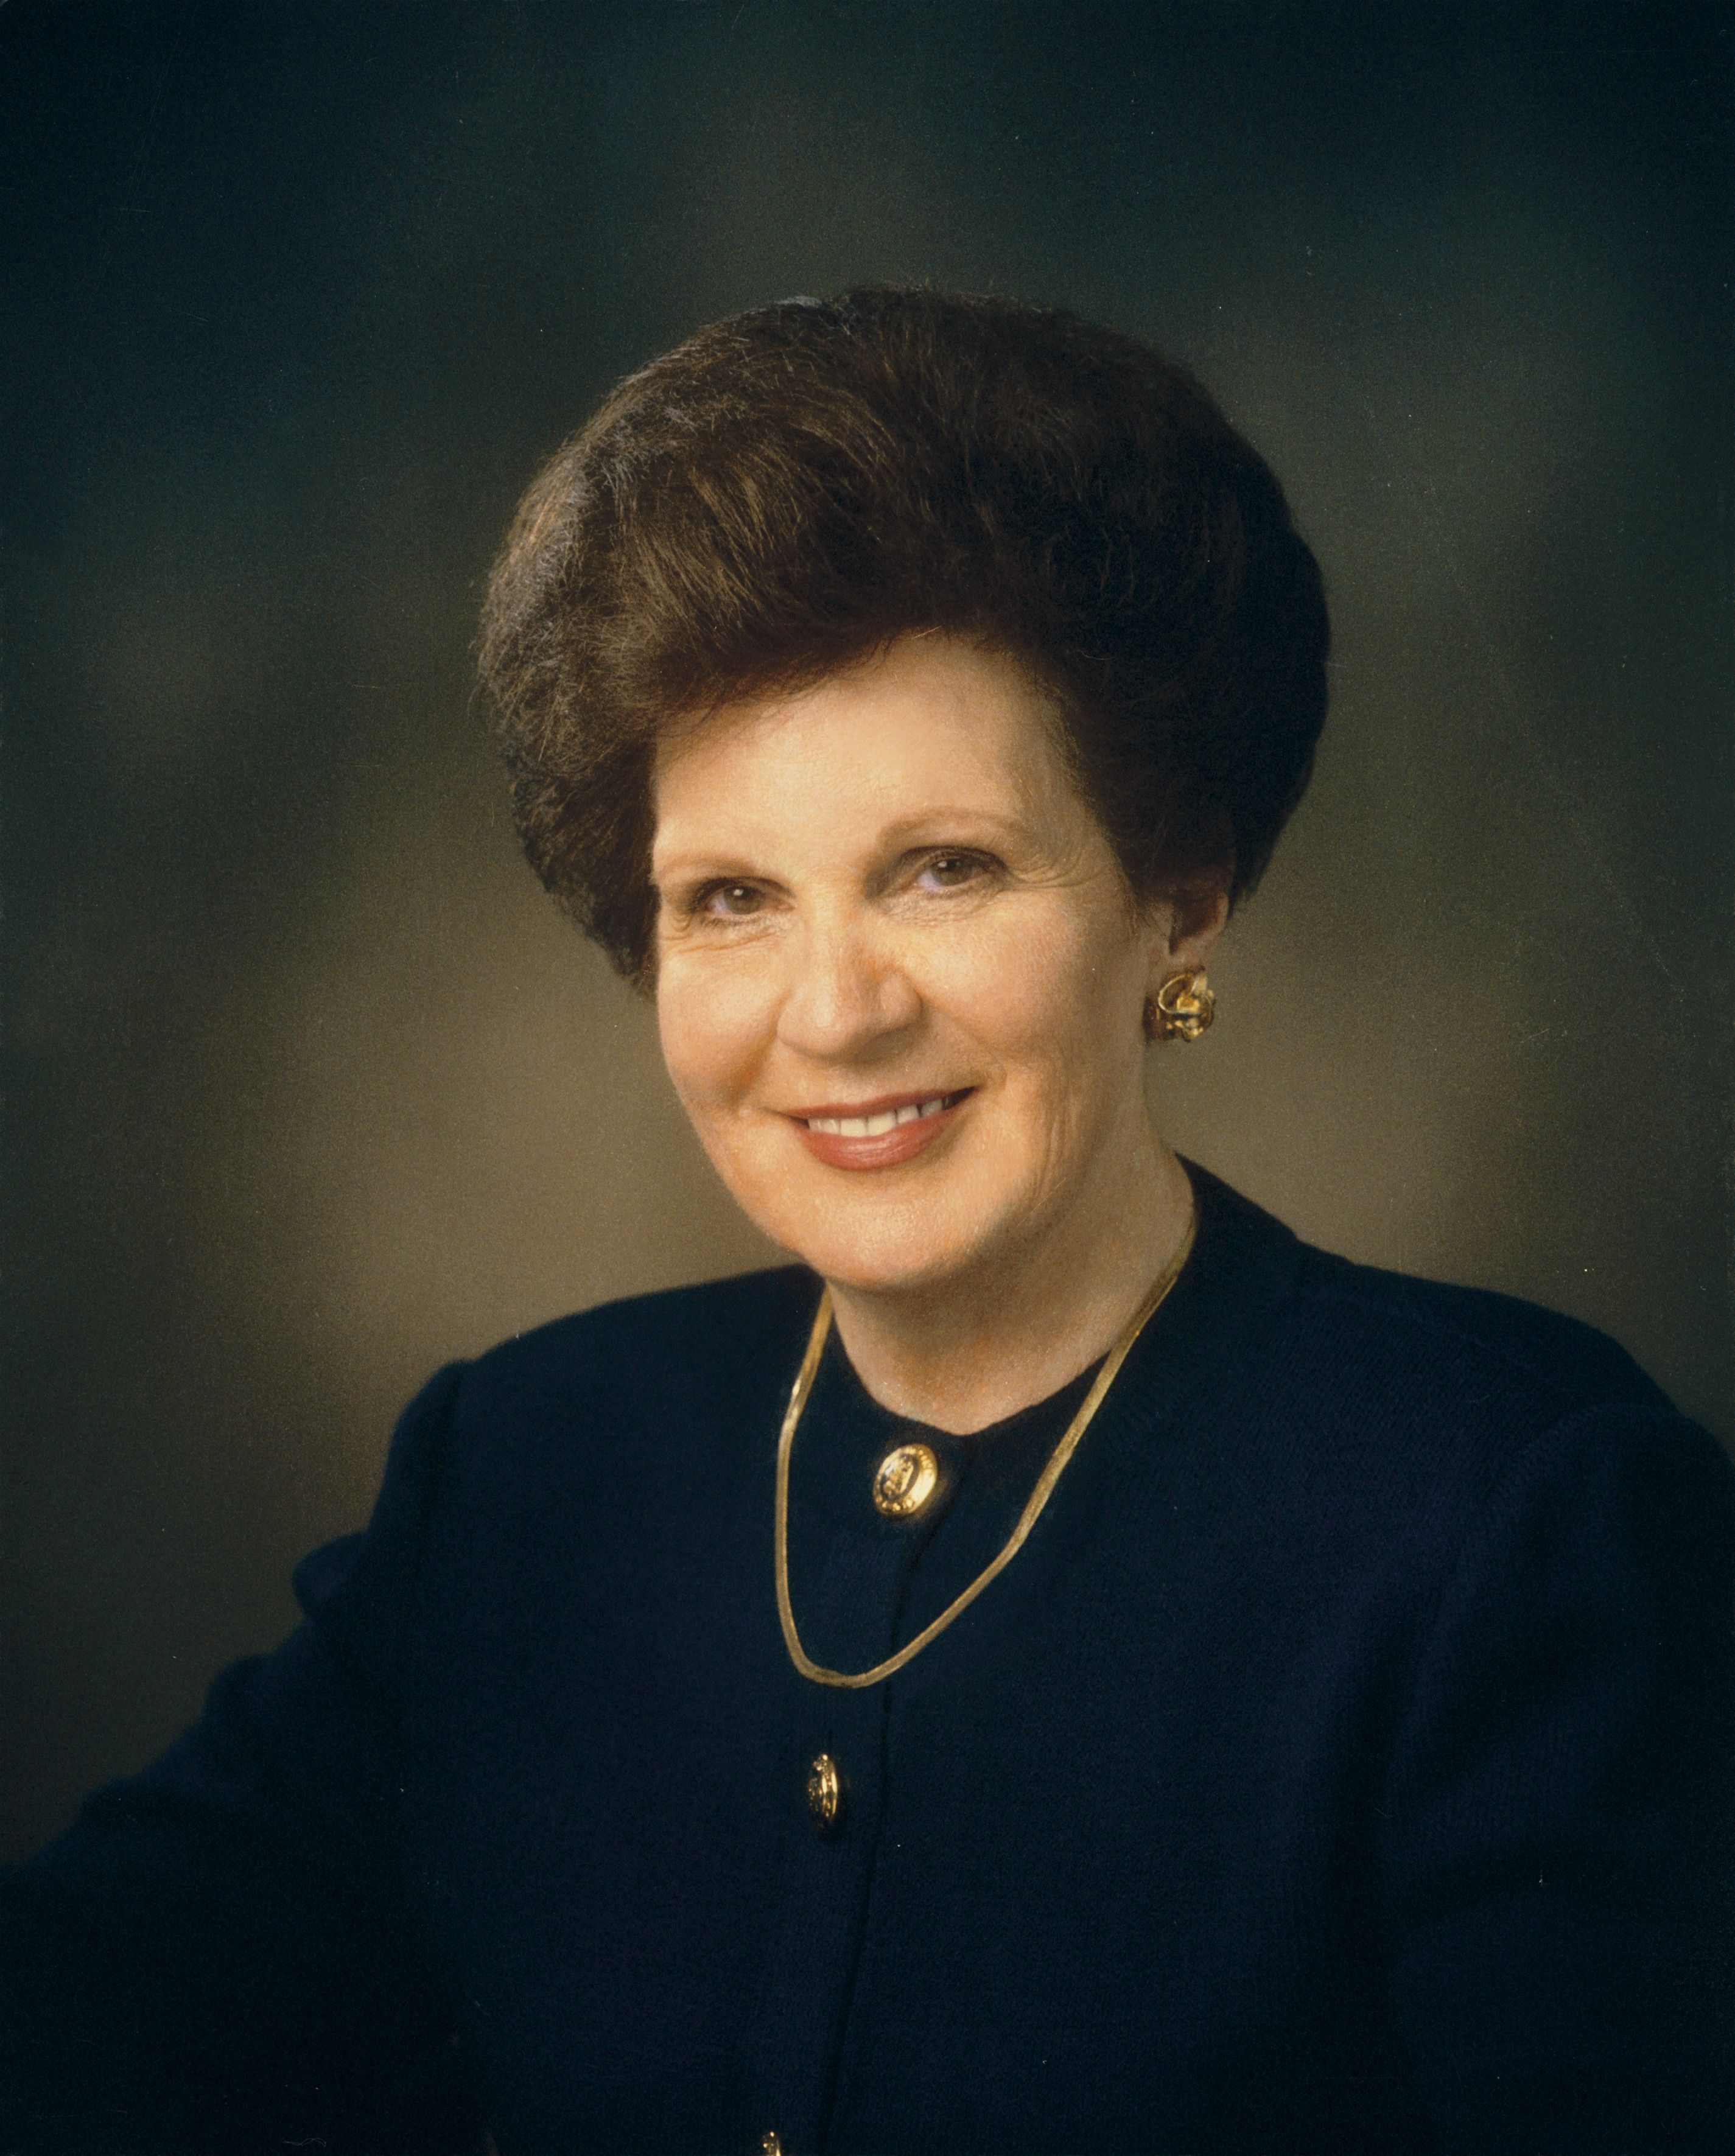 A portrait of Mary Ellen Wood Smoot, who served as the 13th general president of the Relief Society from 1997 to 2002.